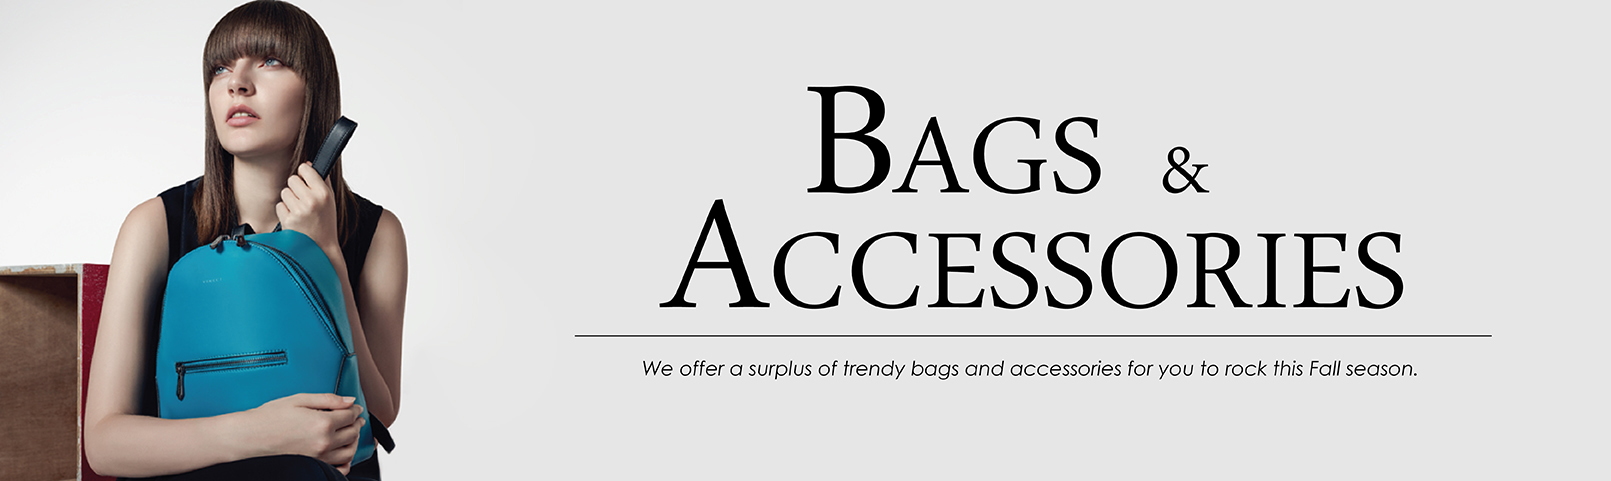 Bags & Accessories